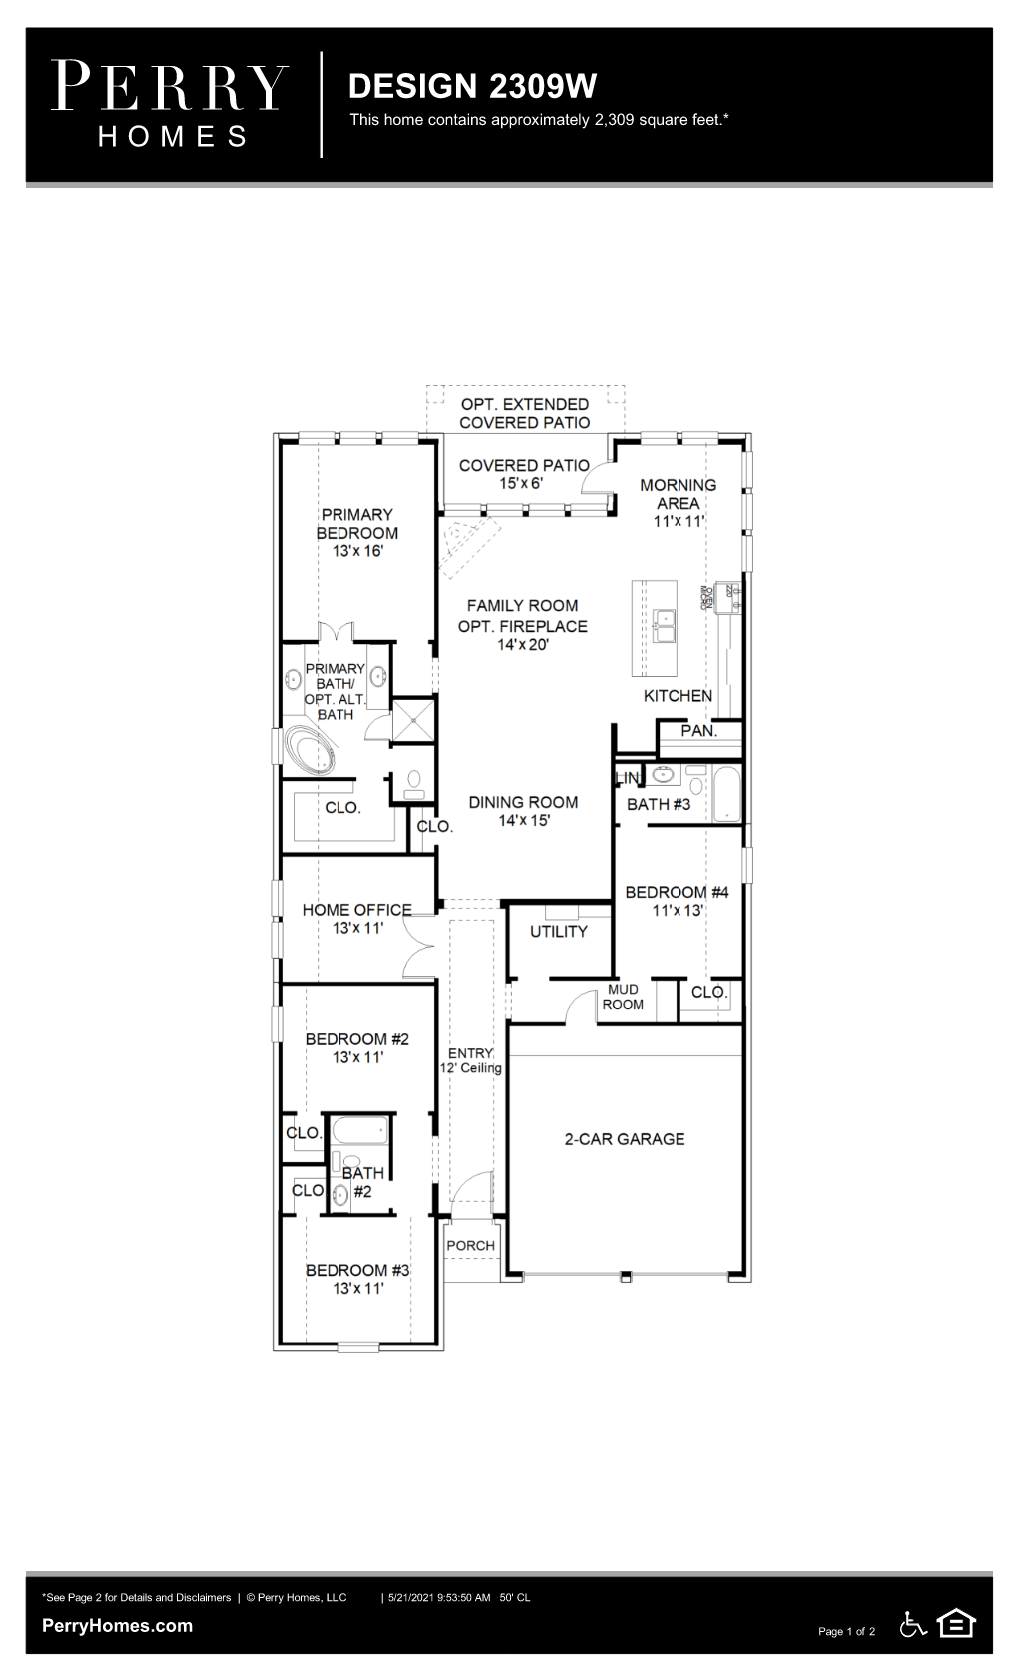 Floor Plan for 2309W